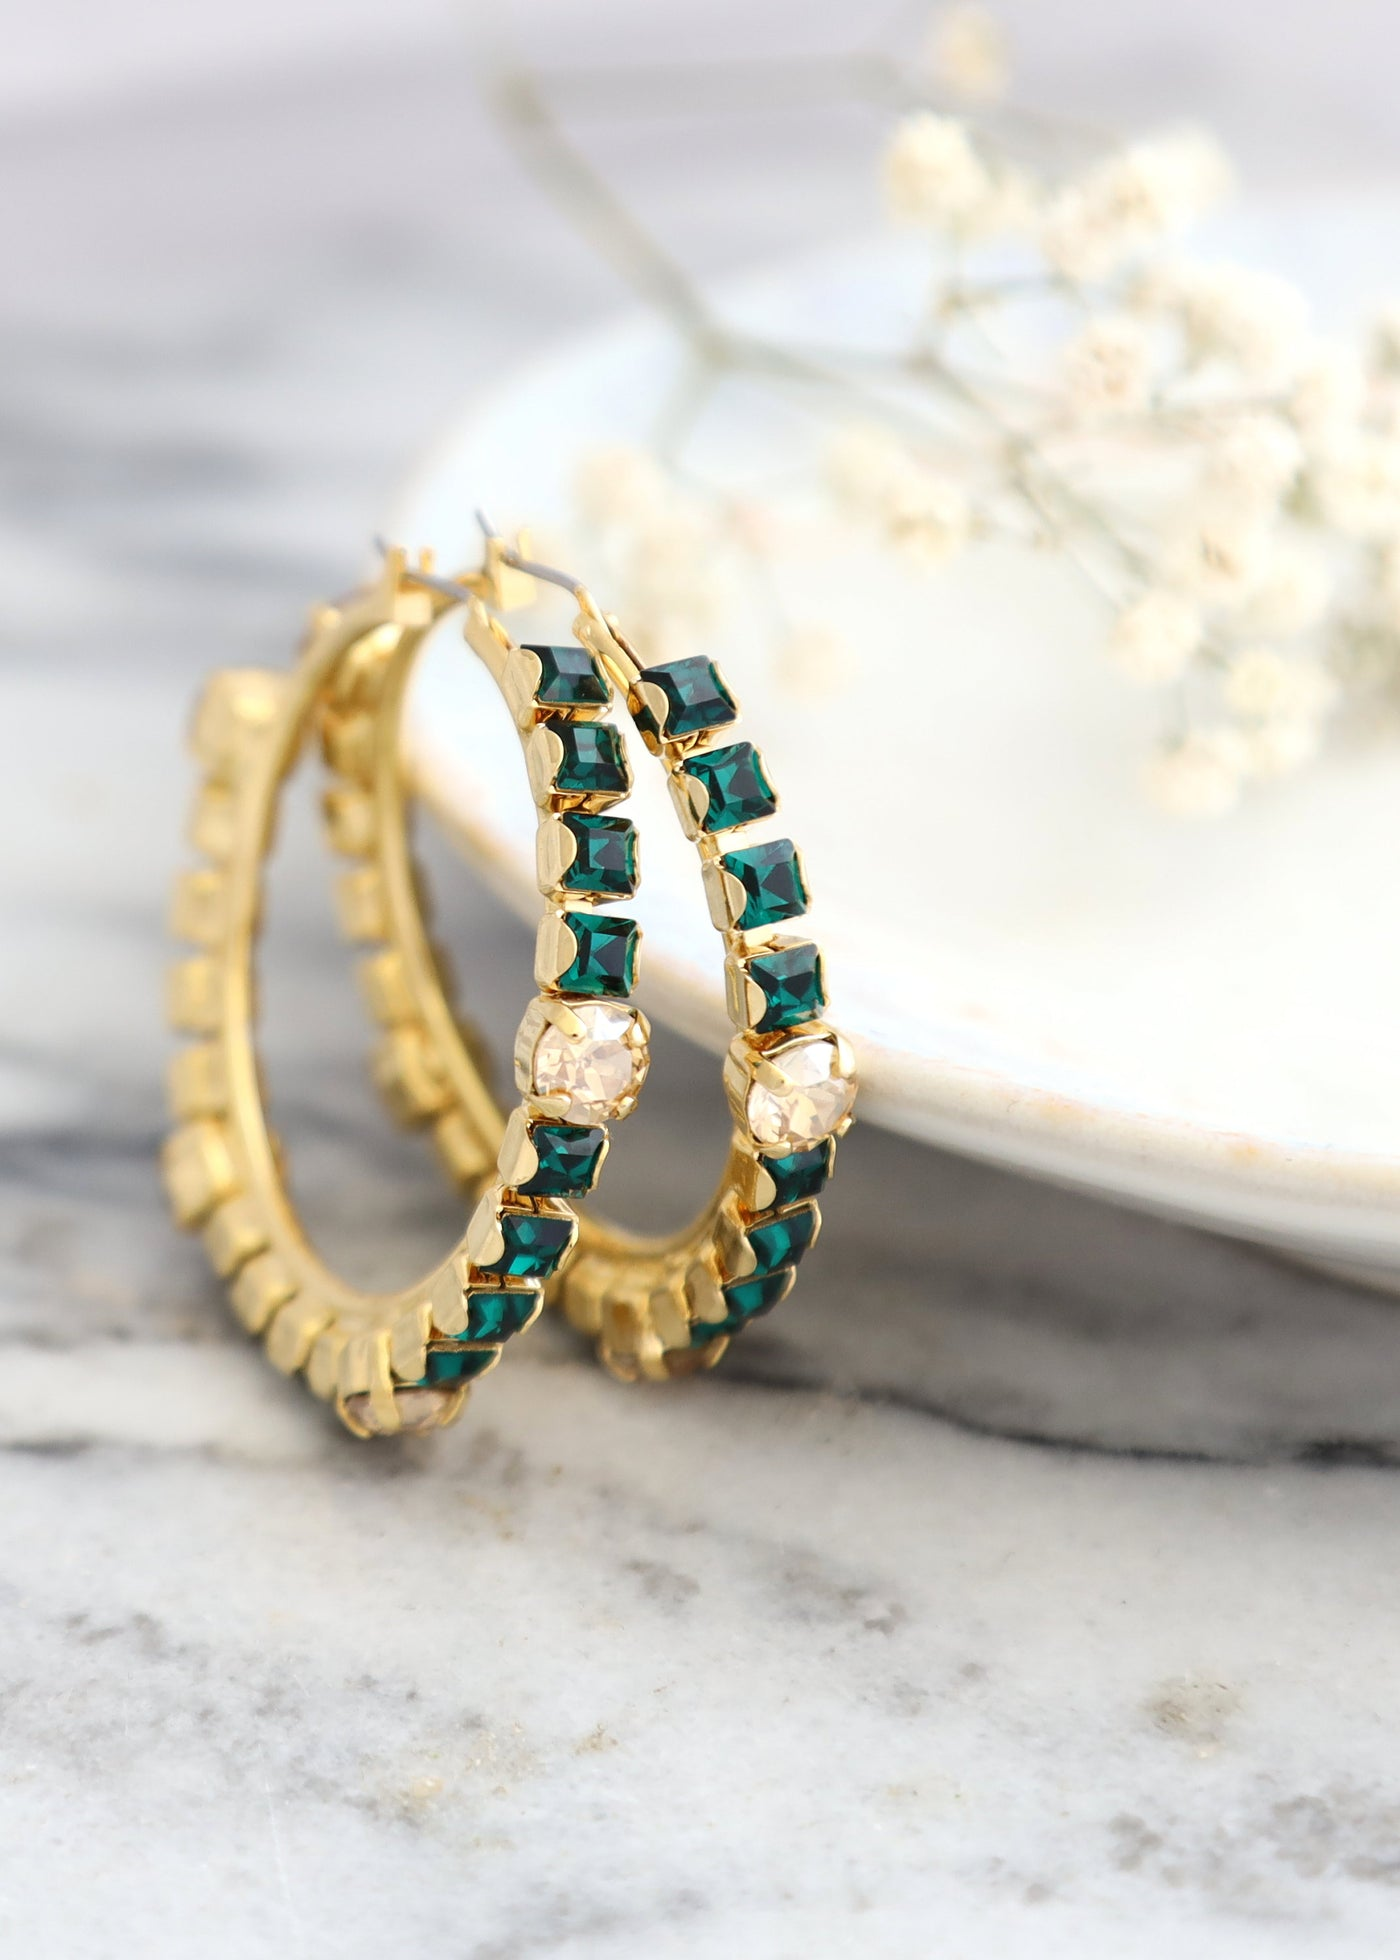 Emerald Earrings, Green Hoop Swarovski Earrings, Oversize Hoop Earrings, Emerald Hoop Earrings, Green Statement Hoop Earrings, Gift For Her